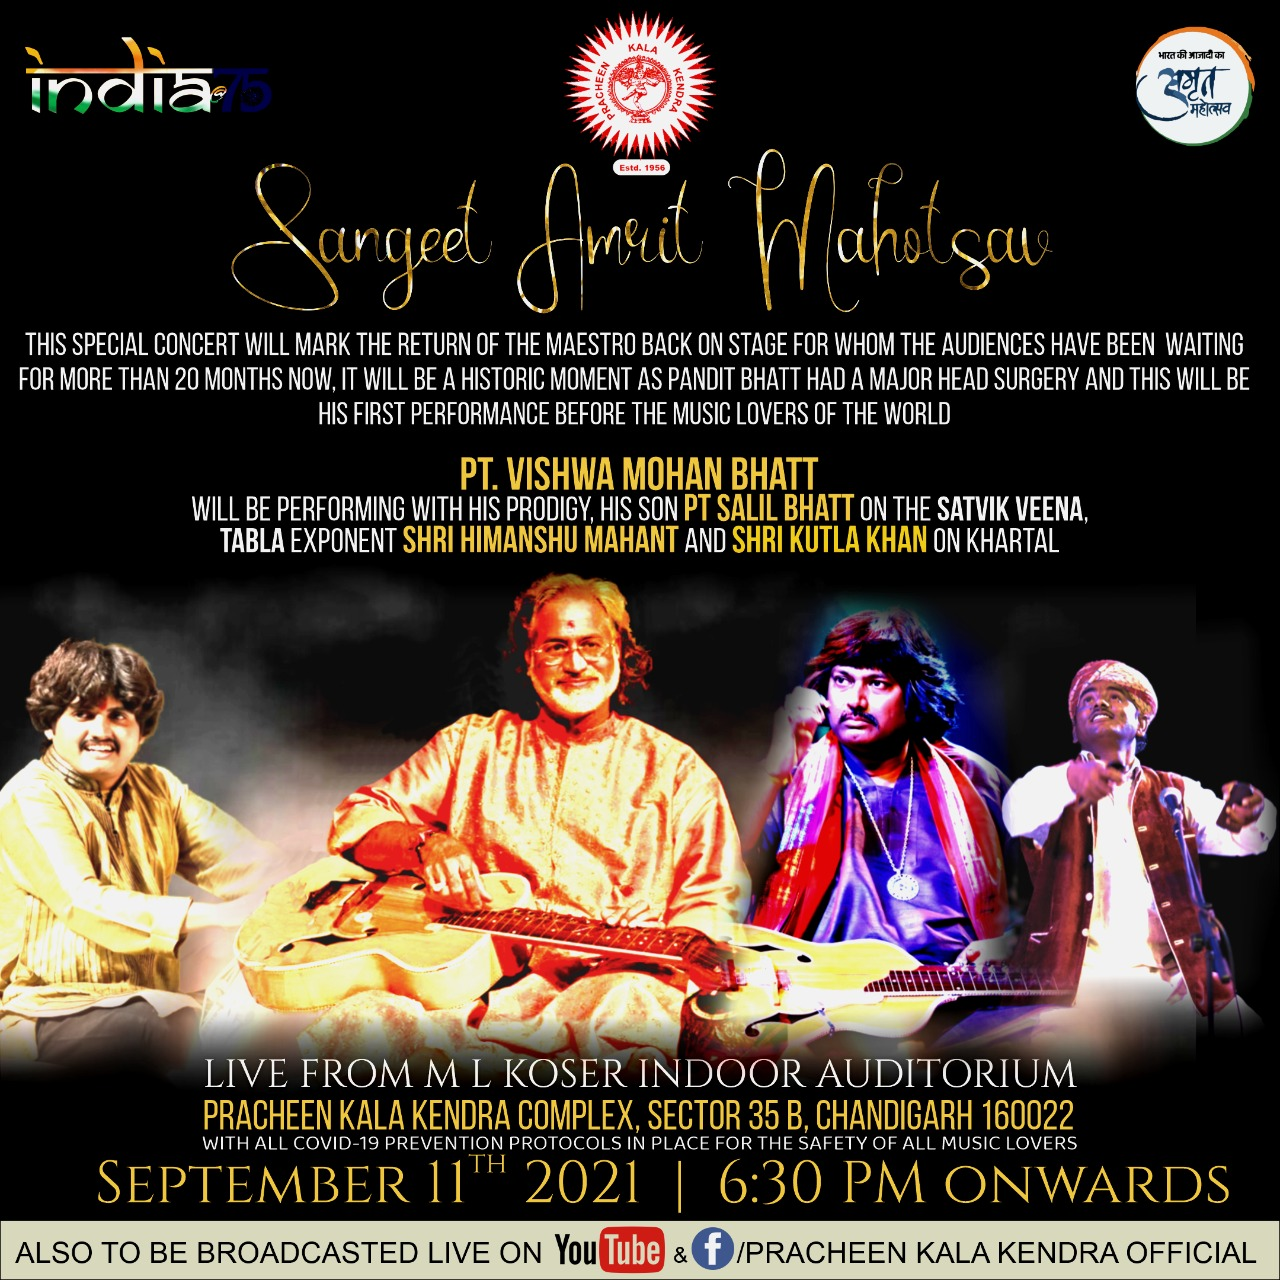 A special event featuring Padmabhushan Pt. Vishwamohan Bhatt on 11th September